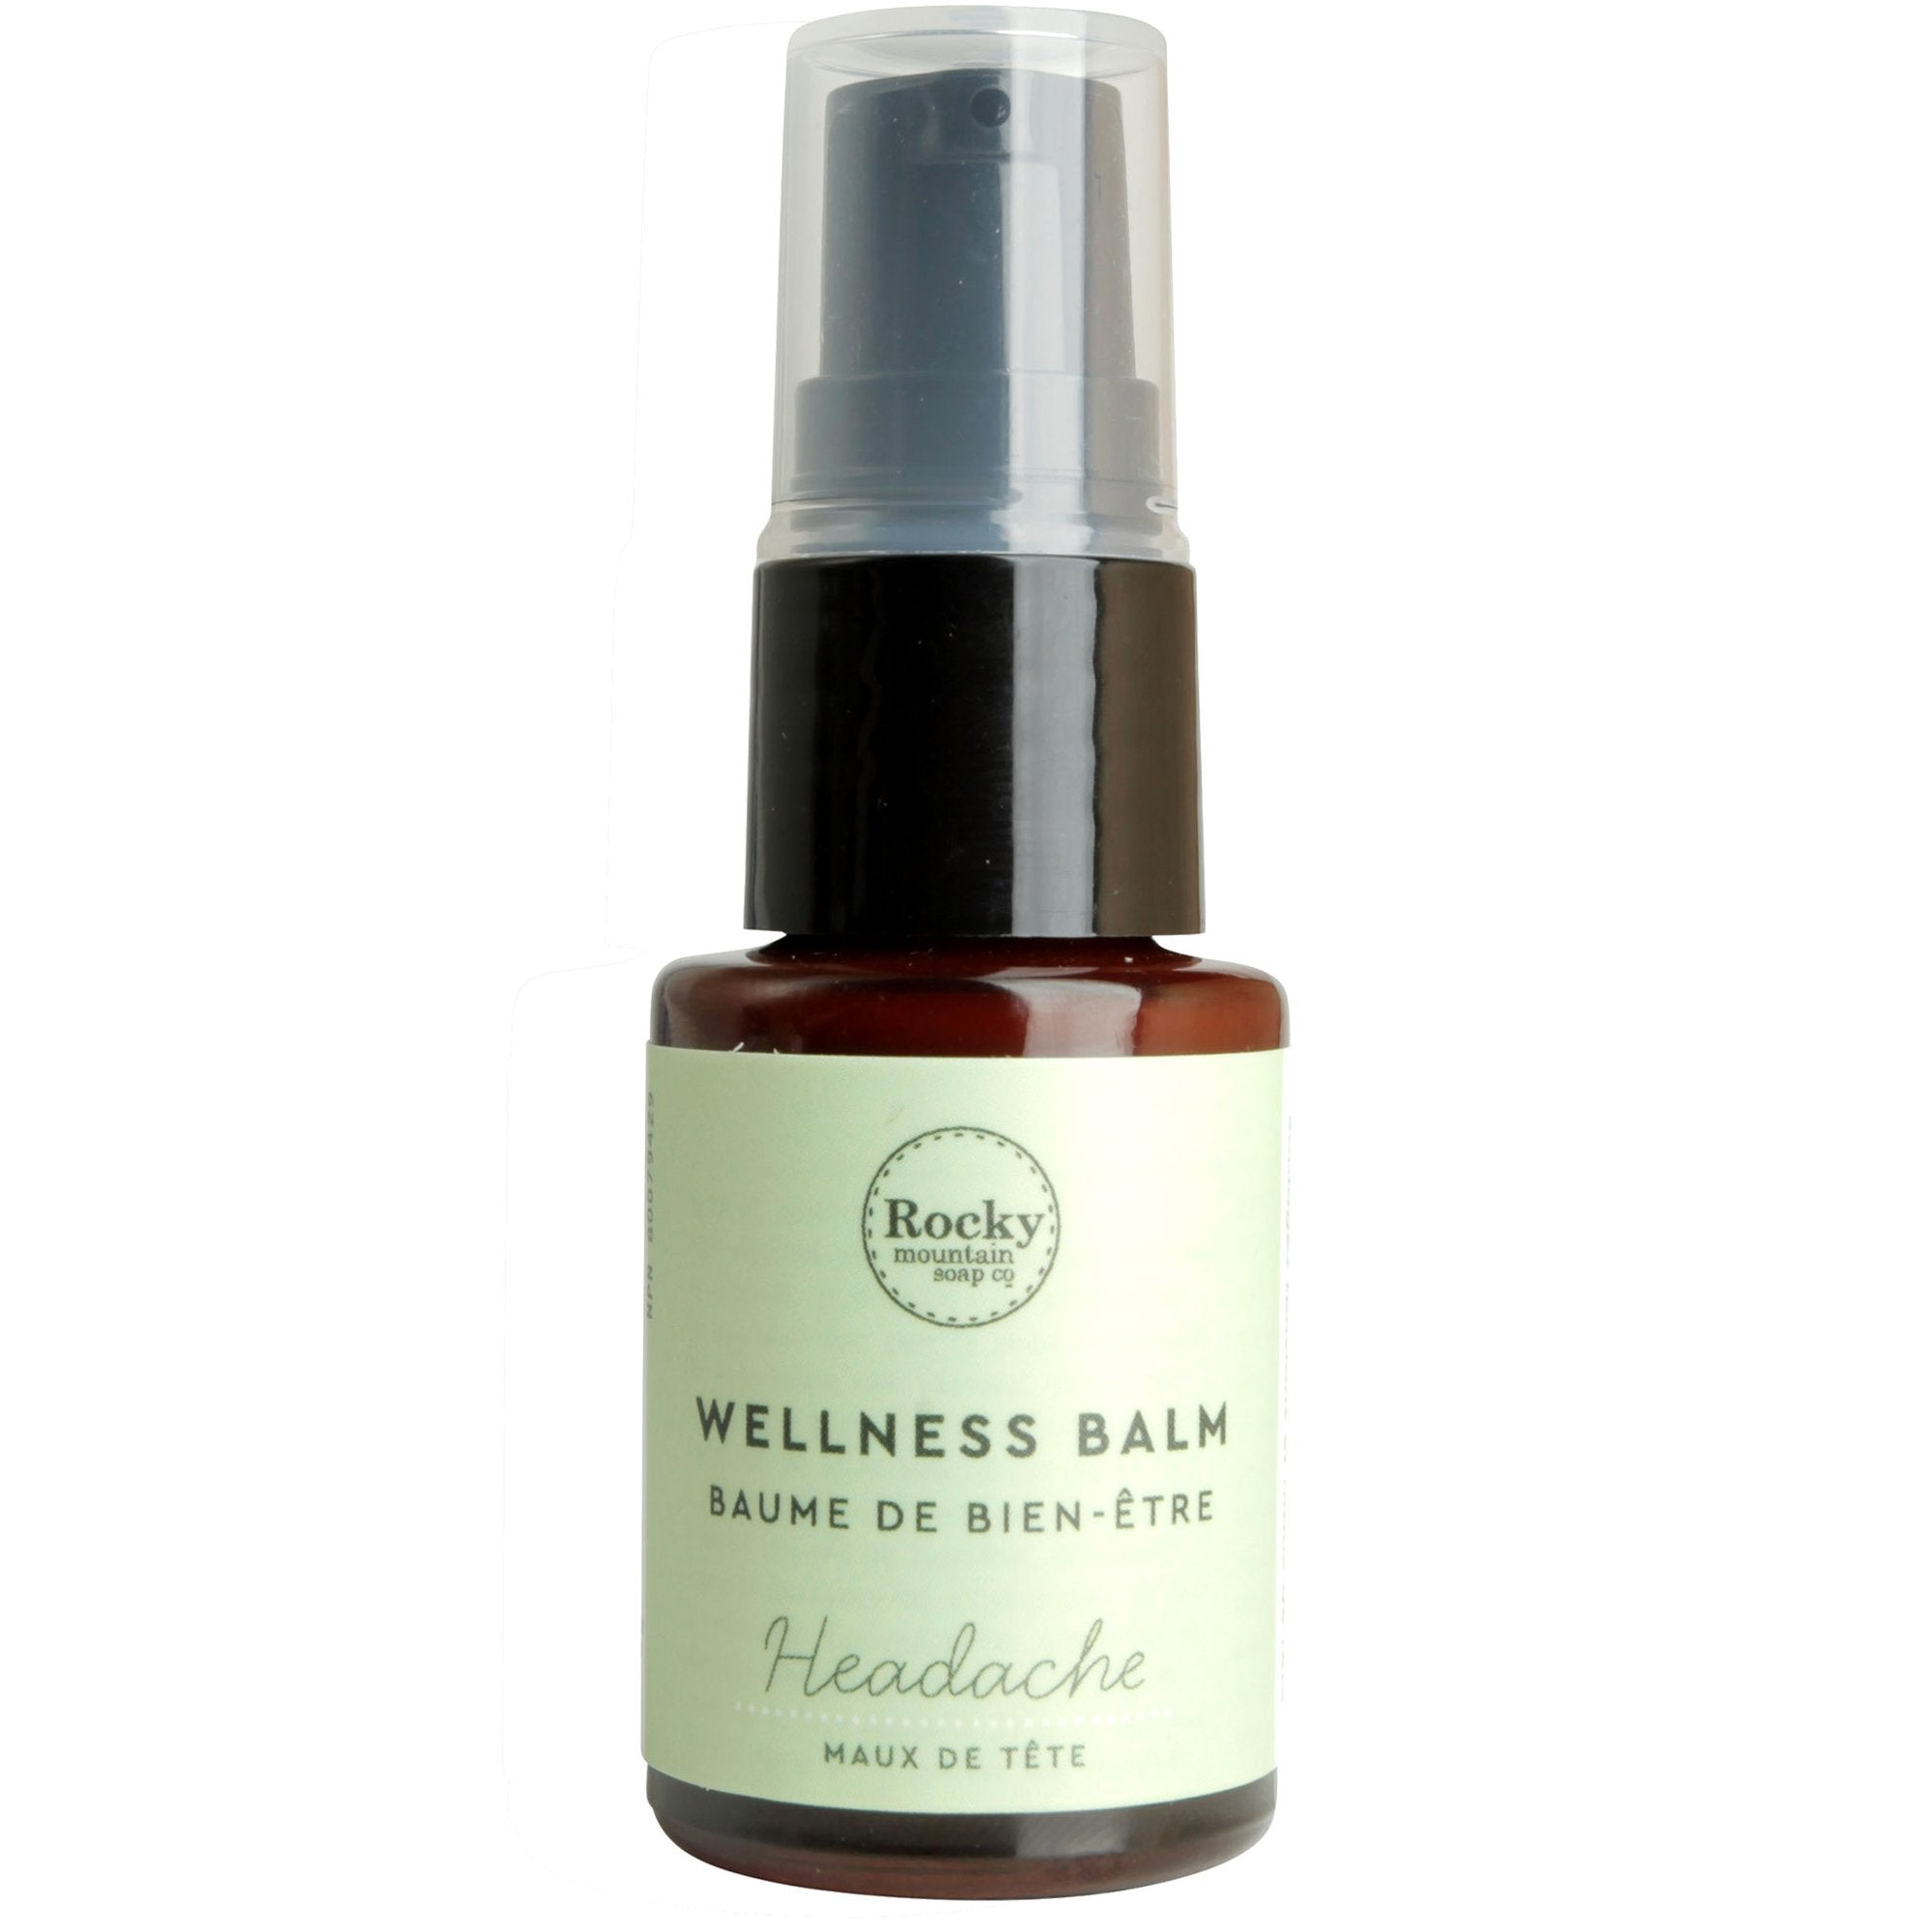 Headache Wellness Balm - Cocoa Spa Boutique